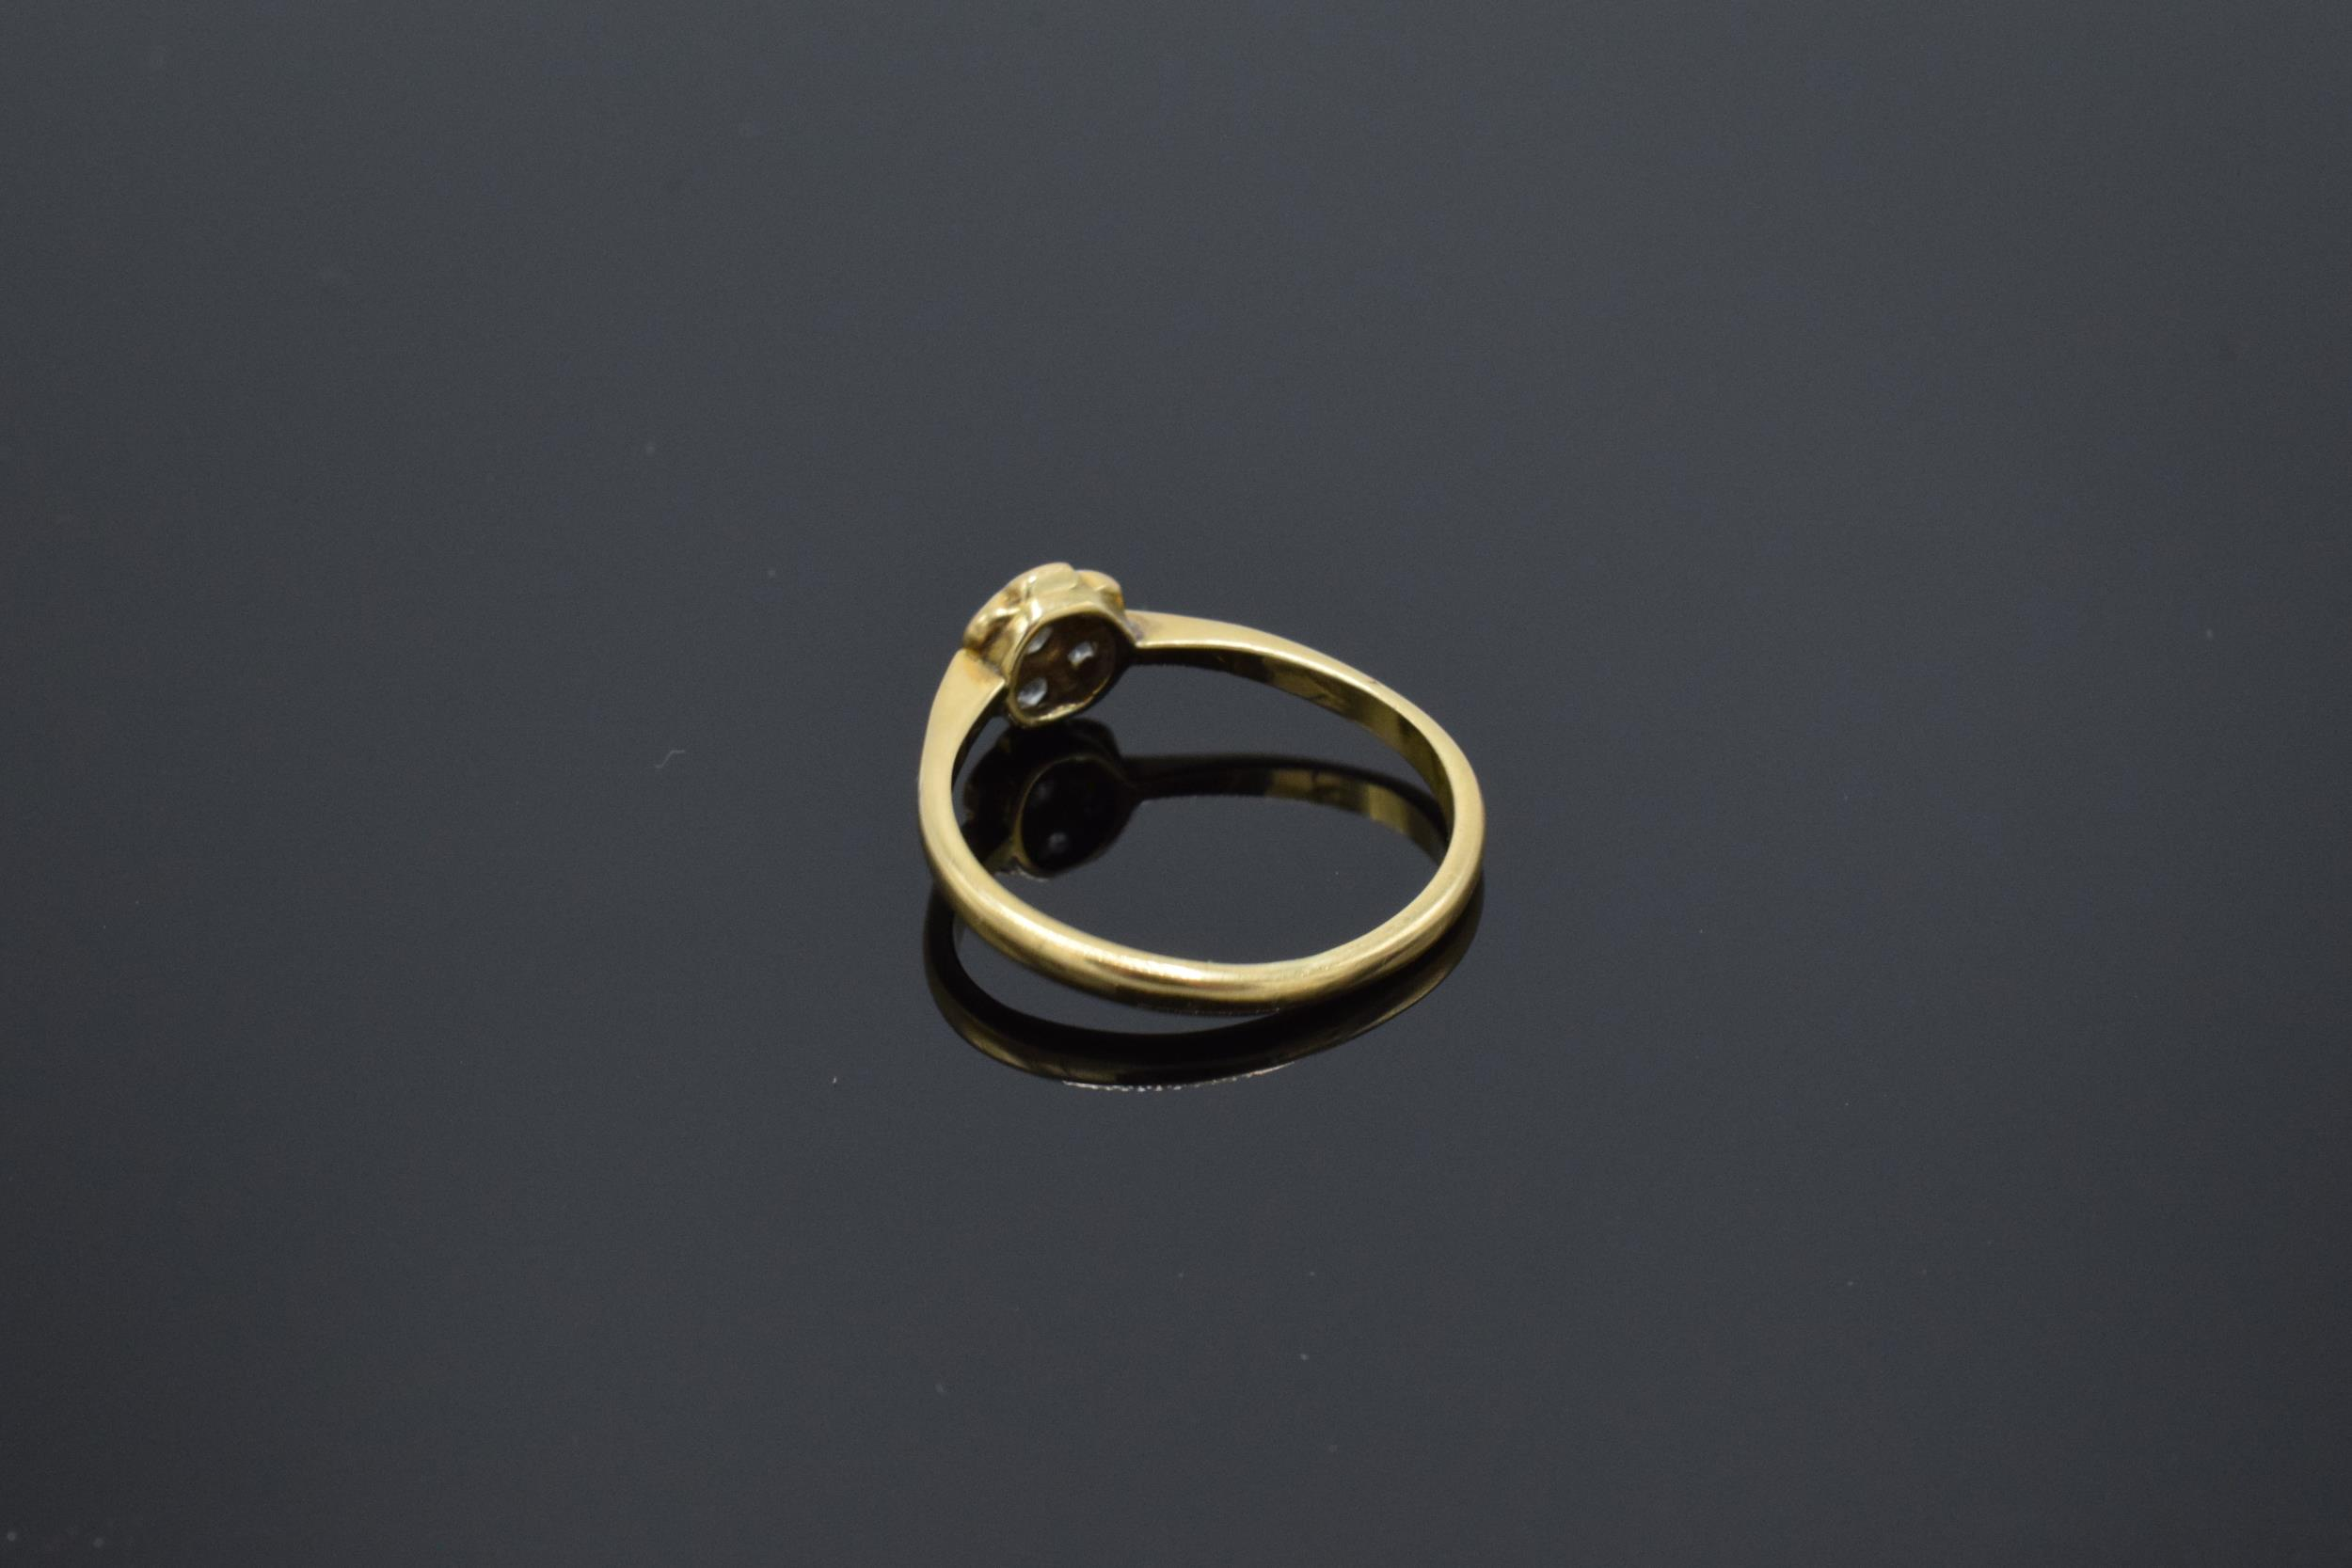 18ct gold daisy ring set with diamonds. UK size O. 2.1 grams. In good condition. - Image 2 of 3